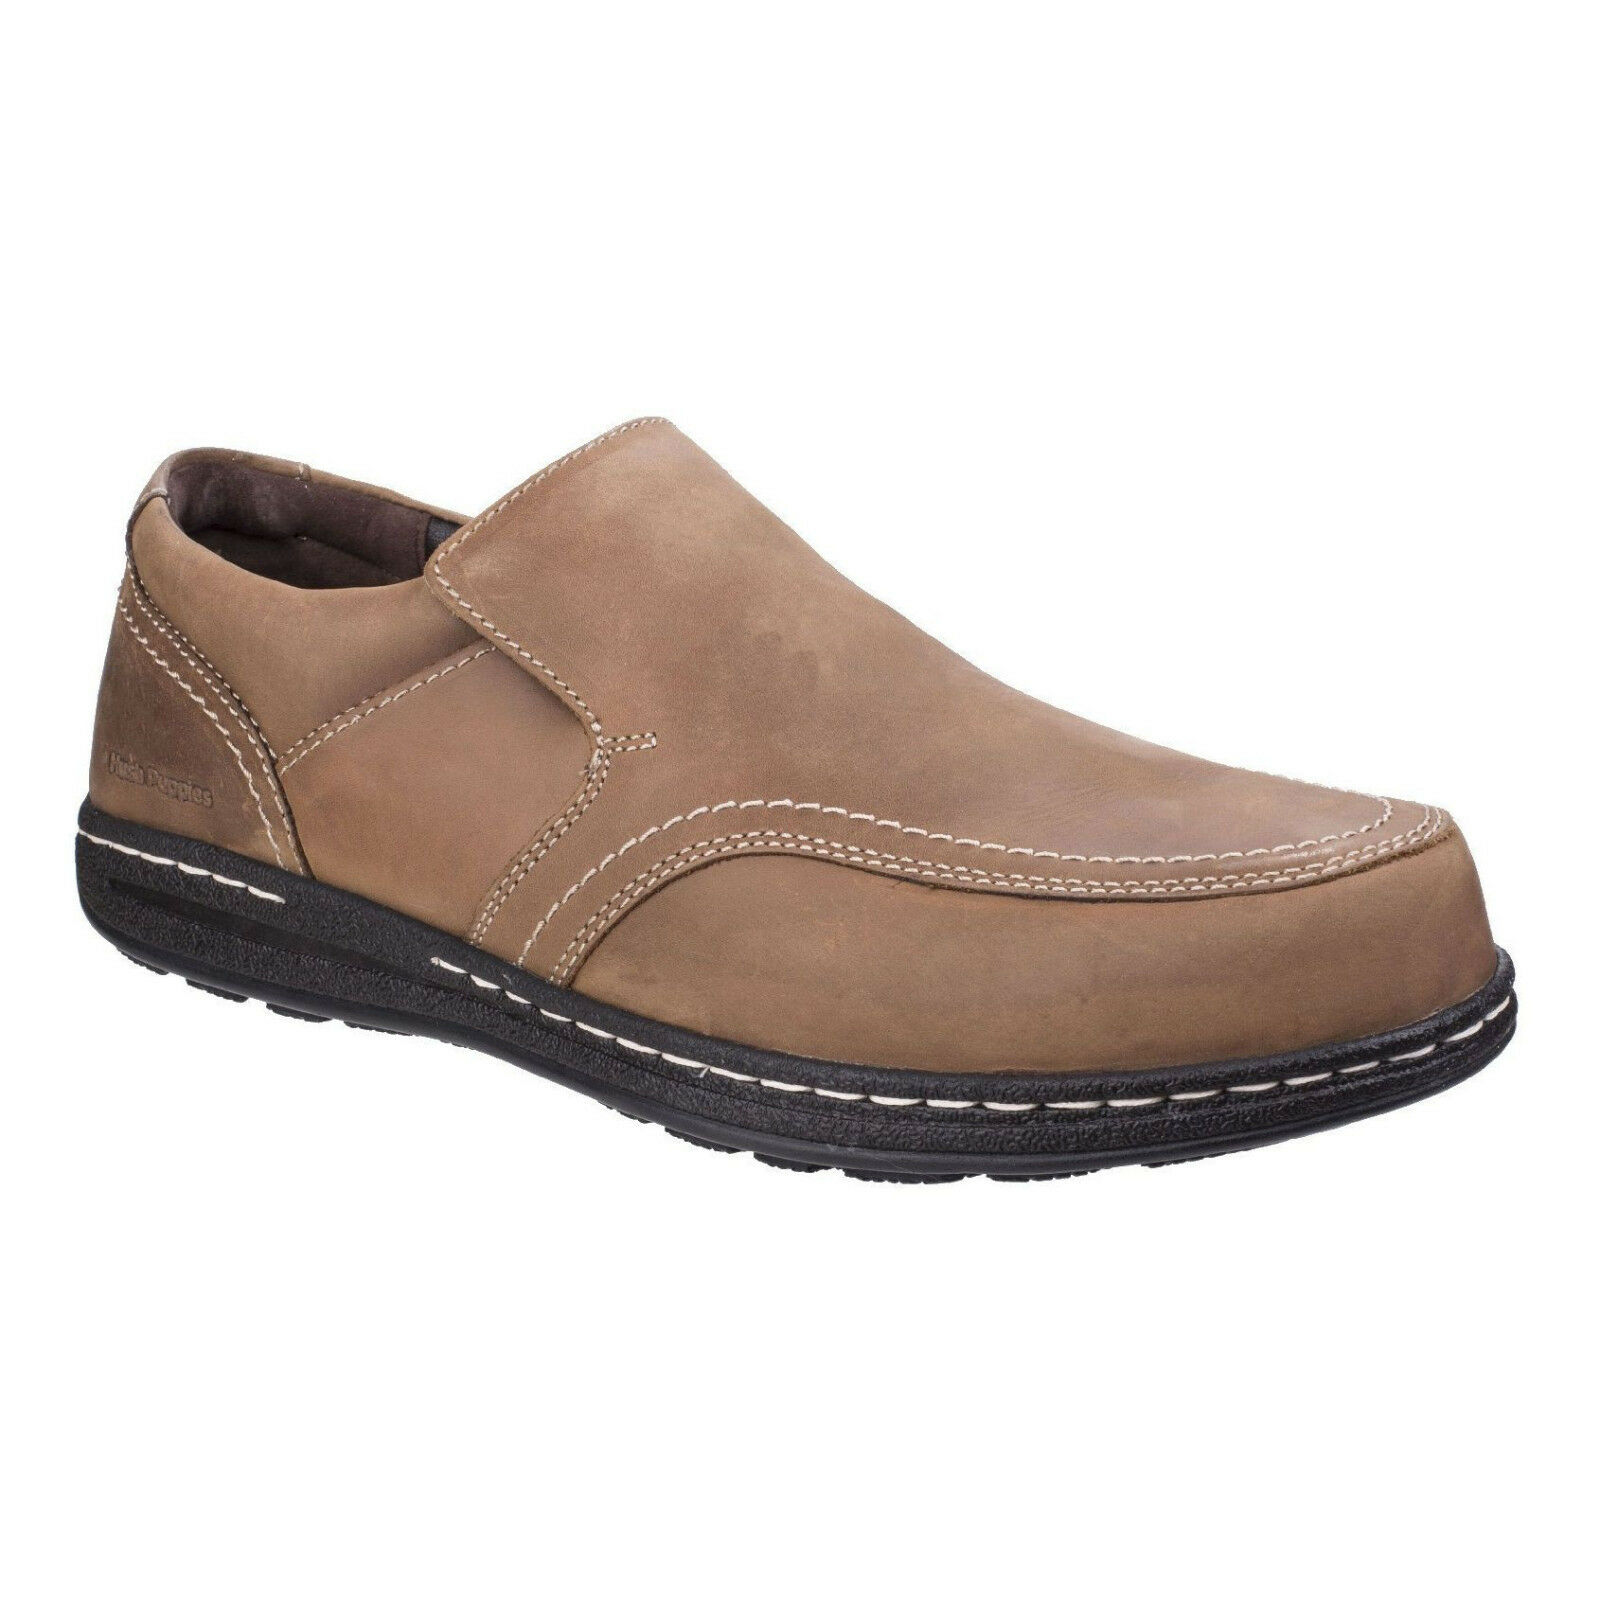 Hush Puppies-Vindo Victory Men's Tan Bown Leather Casual Slip on shoe UK 7 EU 41